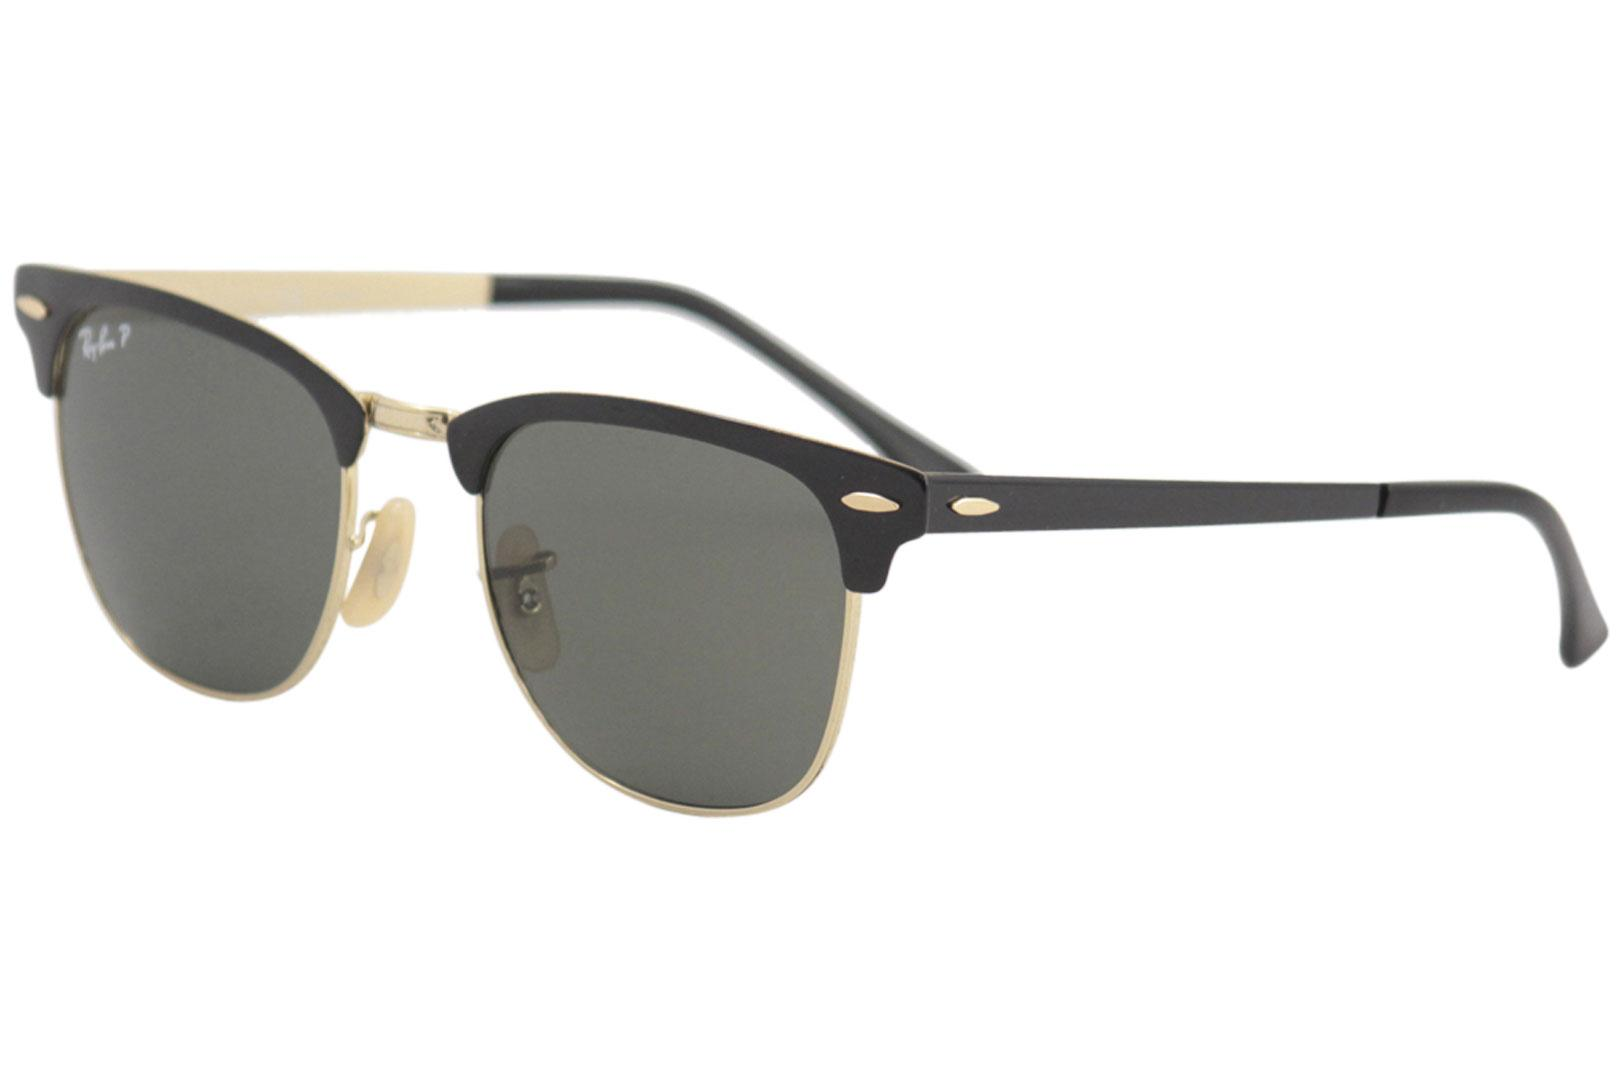 b49b09e905 Ray Ban Clubmaster Metal RB3716 RB 3716 Square RayBan Polarized Sunglasses  by Ray Ban. Touch to zoom